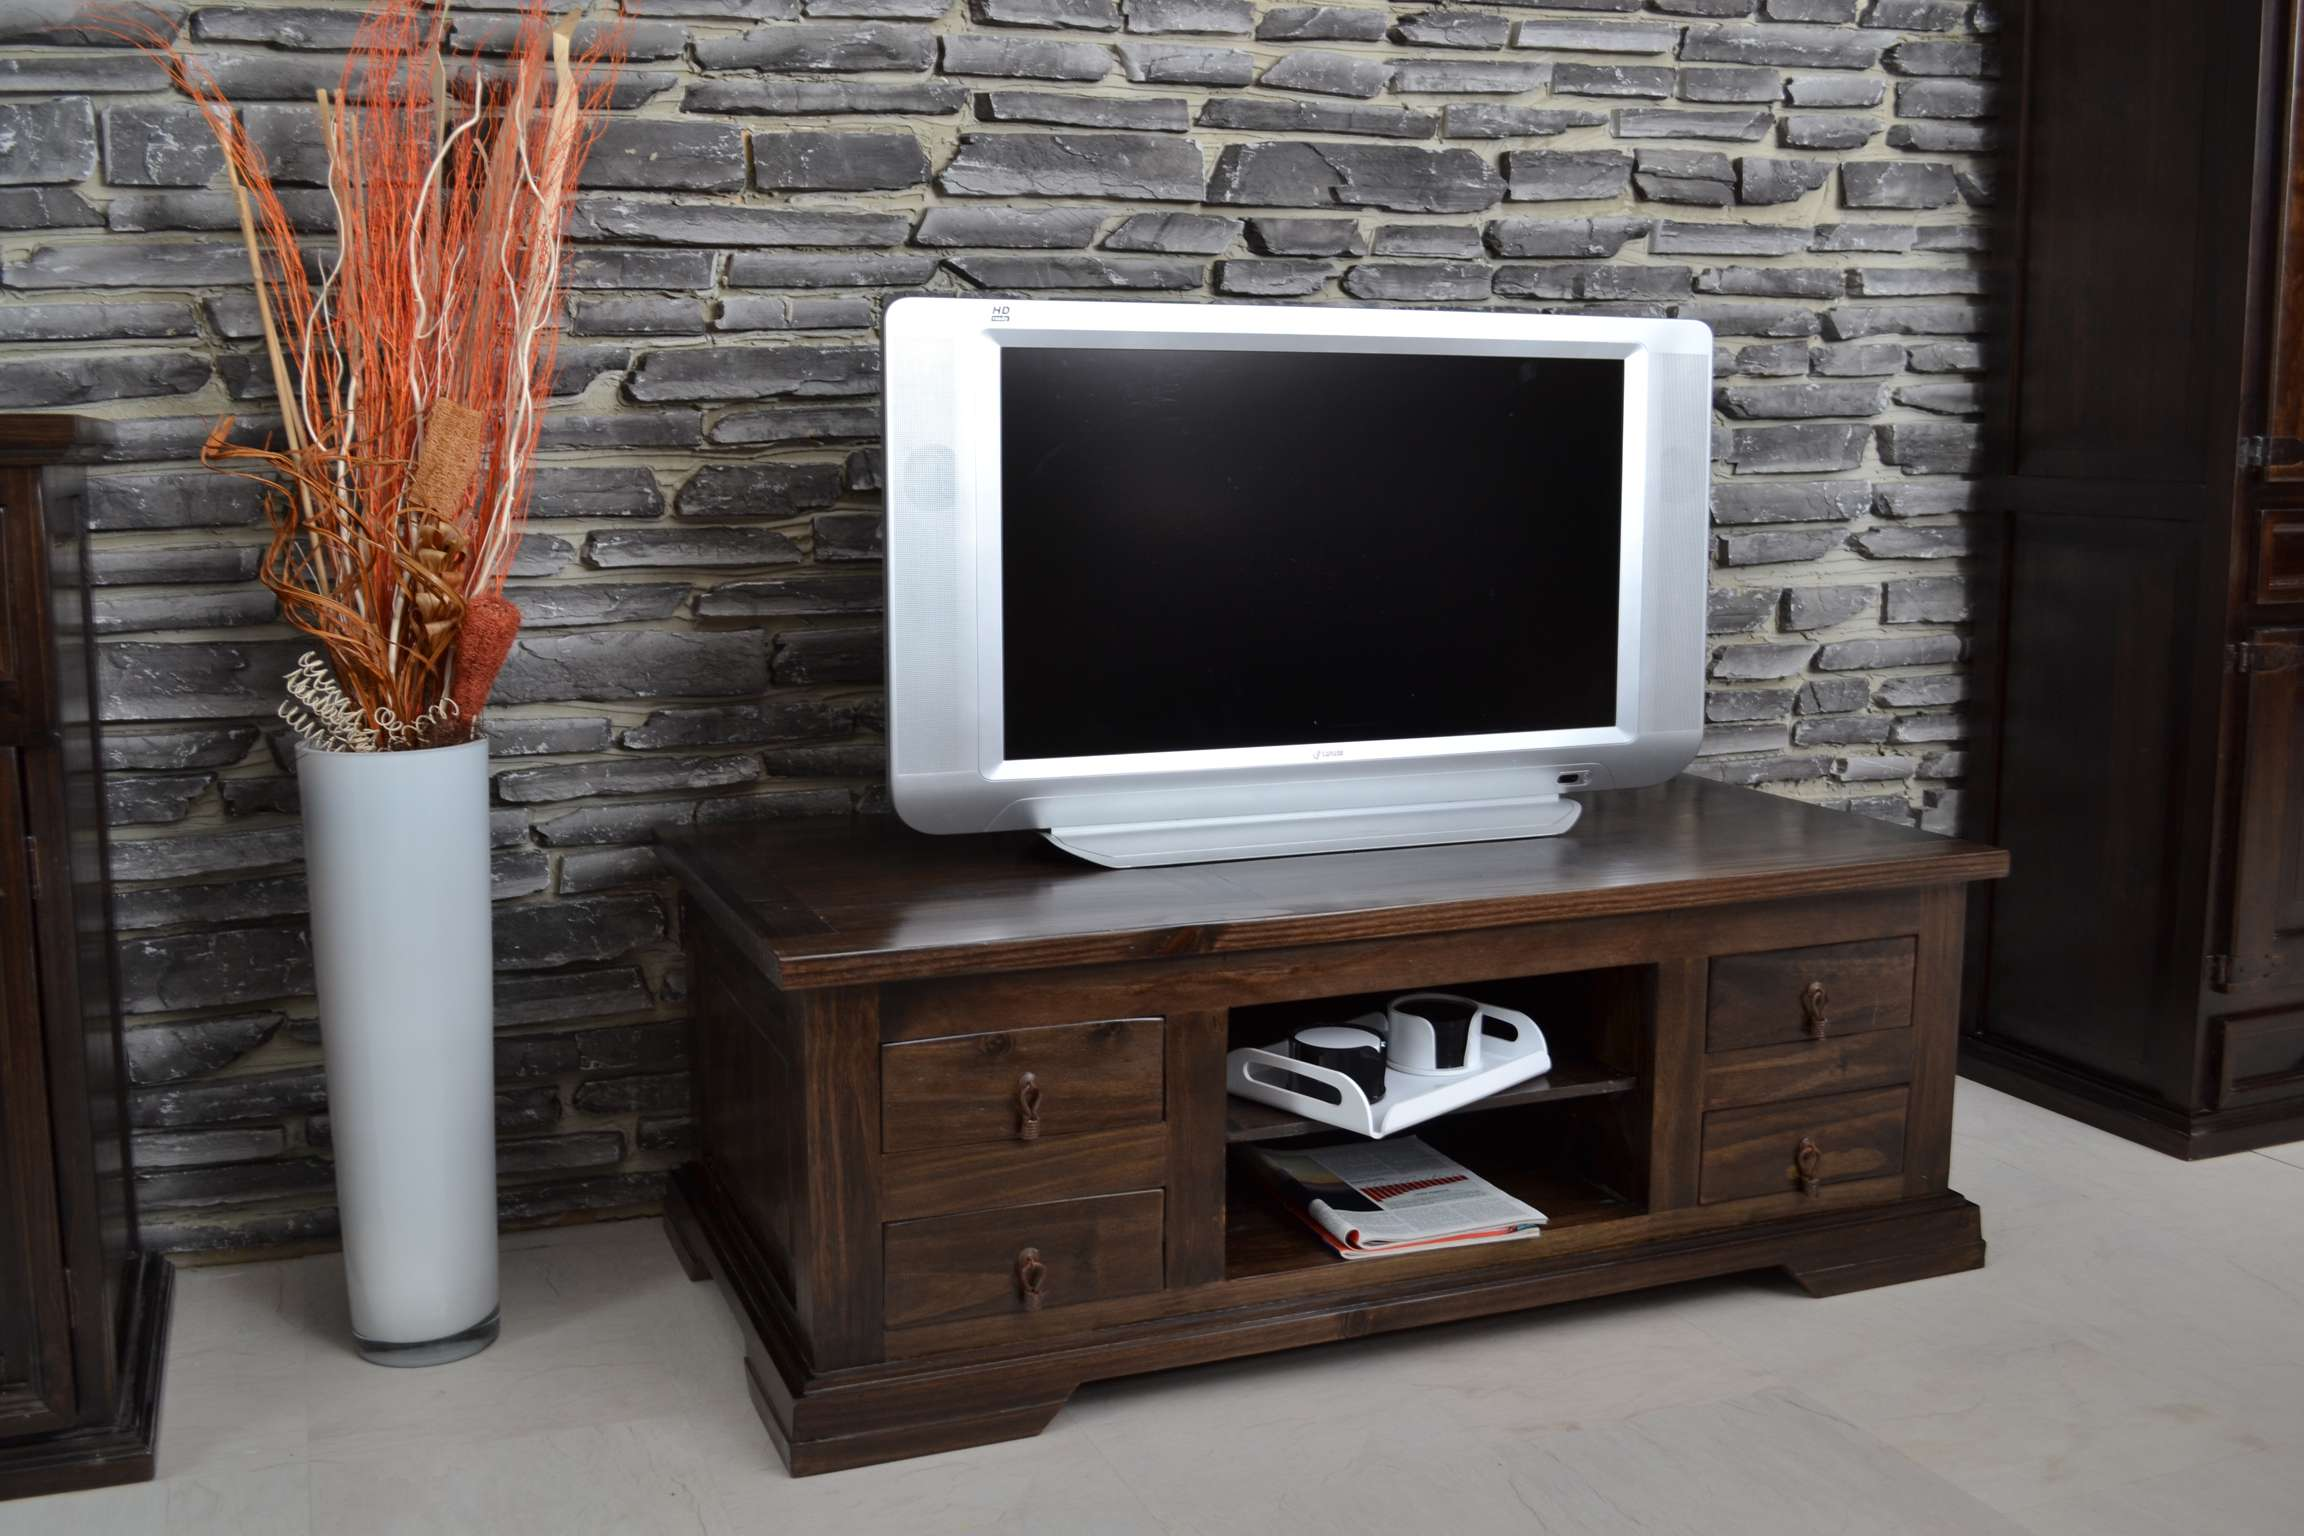 mexico tv kommode massivholz m bel pinie kolonialstil. Black Bedroom Furniture Sets. Home Design Ideas